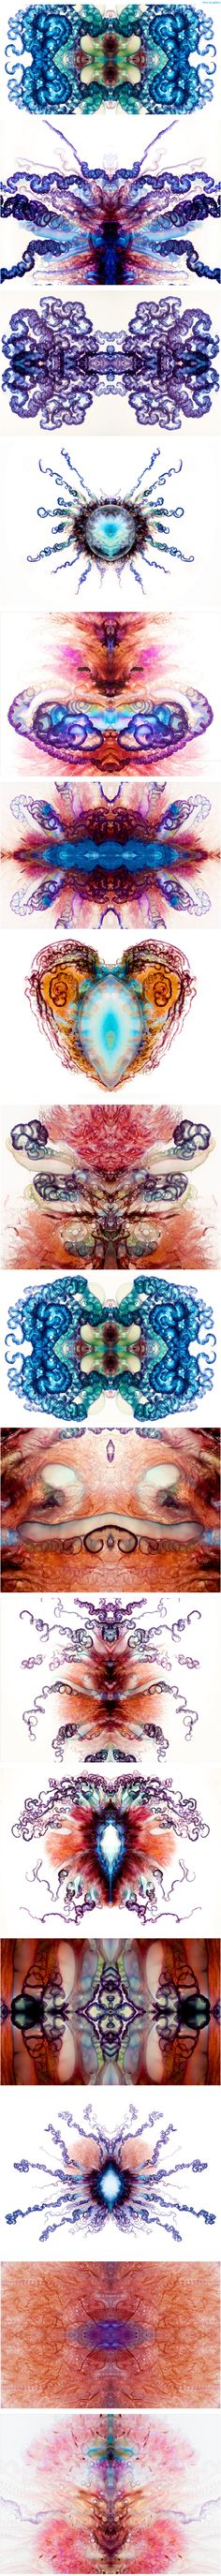 Psychedelic Portuguese Man-of-War Photos by Aaron Ansarov You can find Psychedelic and more on our website.Psychedelic Portuguese Man-of-War Photos by Aaron Ansarov Jellyfish Light, Jellyfish Tank, Pink Jellyfish, Jellyfish Drawing, Jellyfish Aquarium, Safari, Man Of War, Lion Mane, Pet Fashion